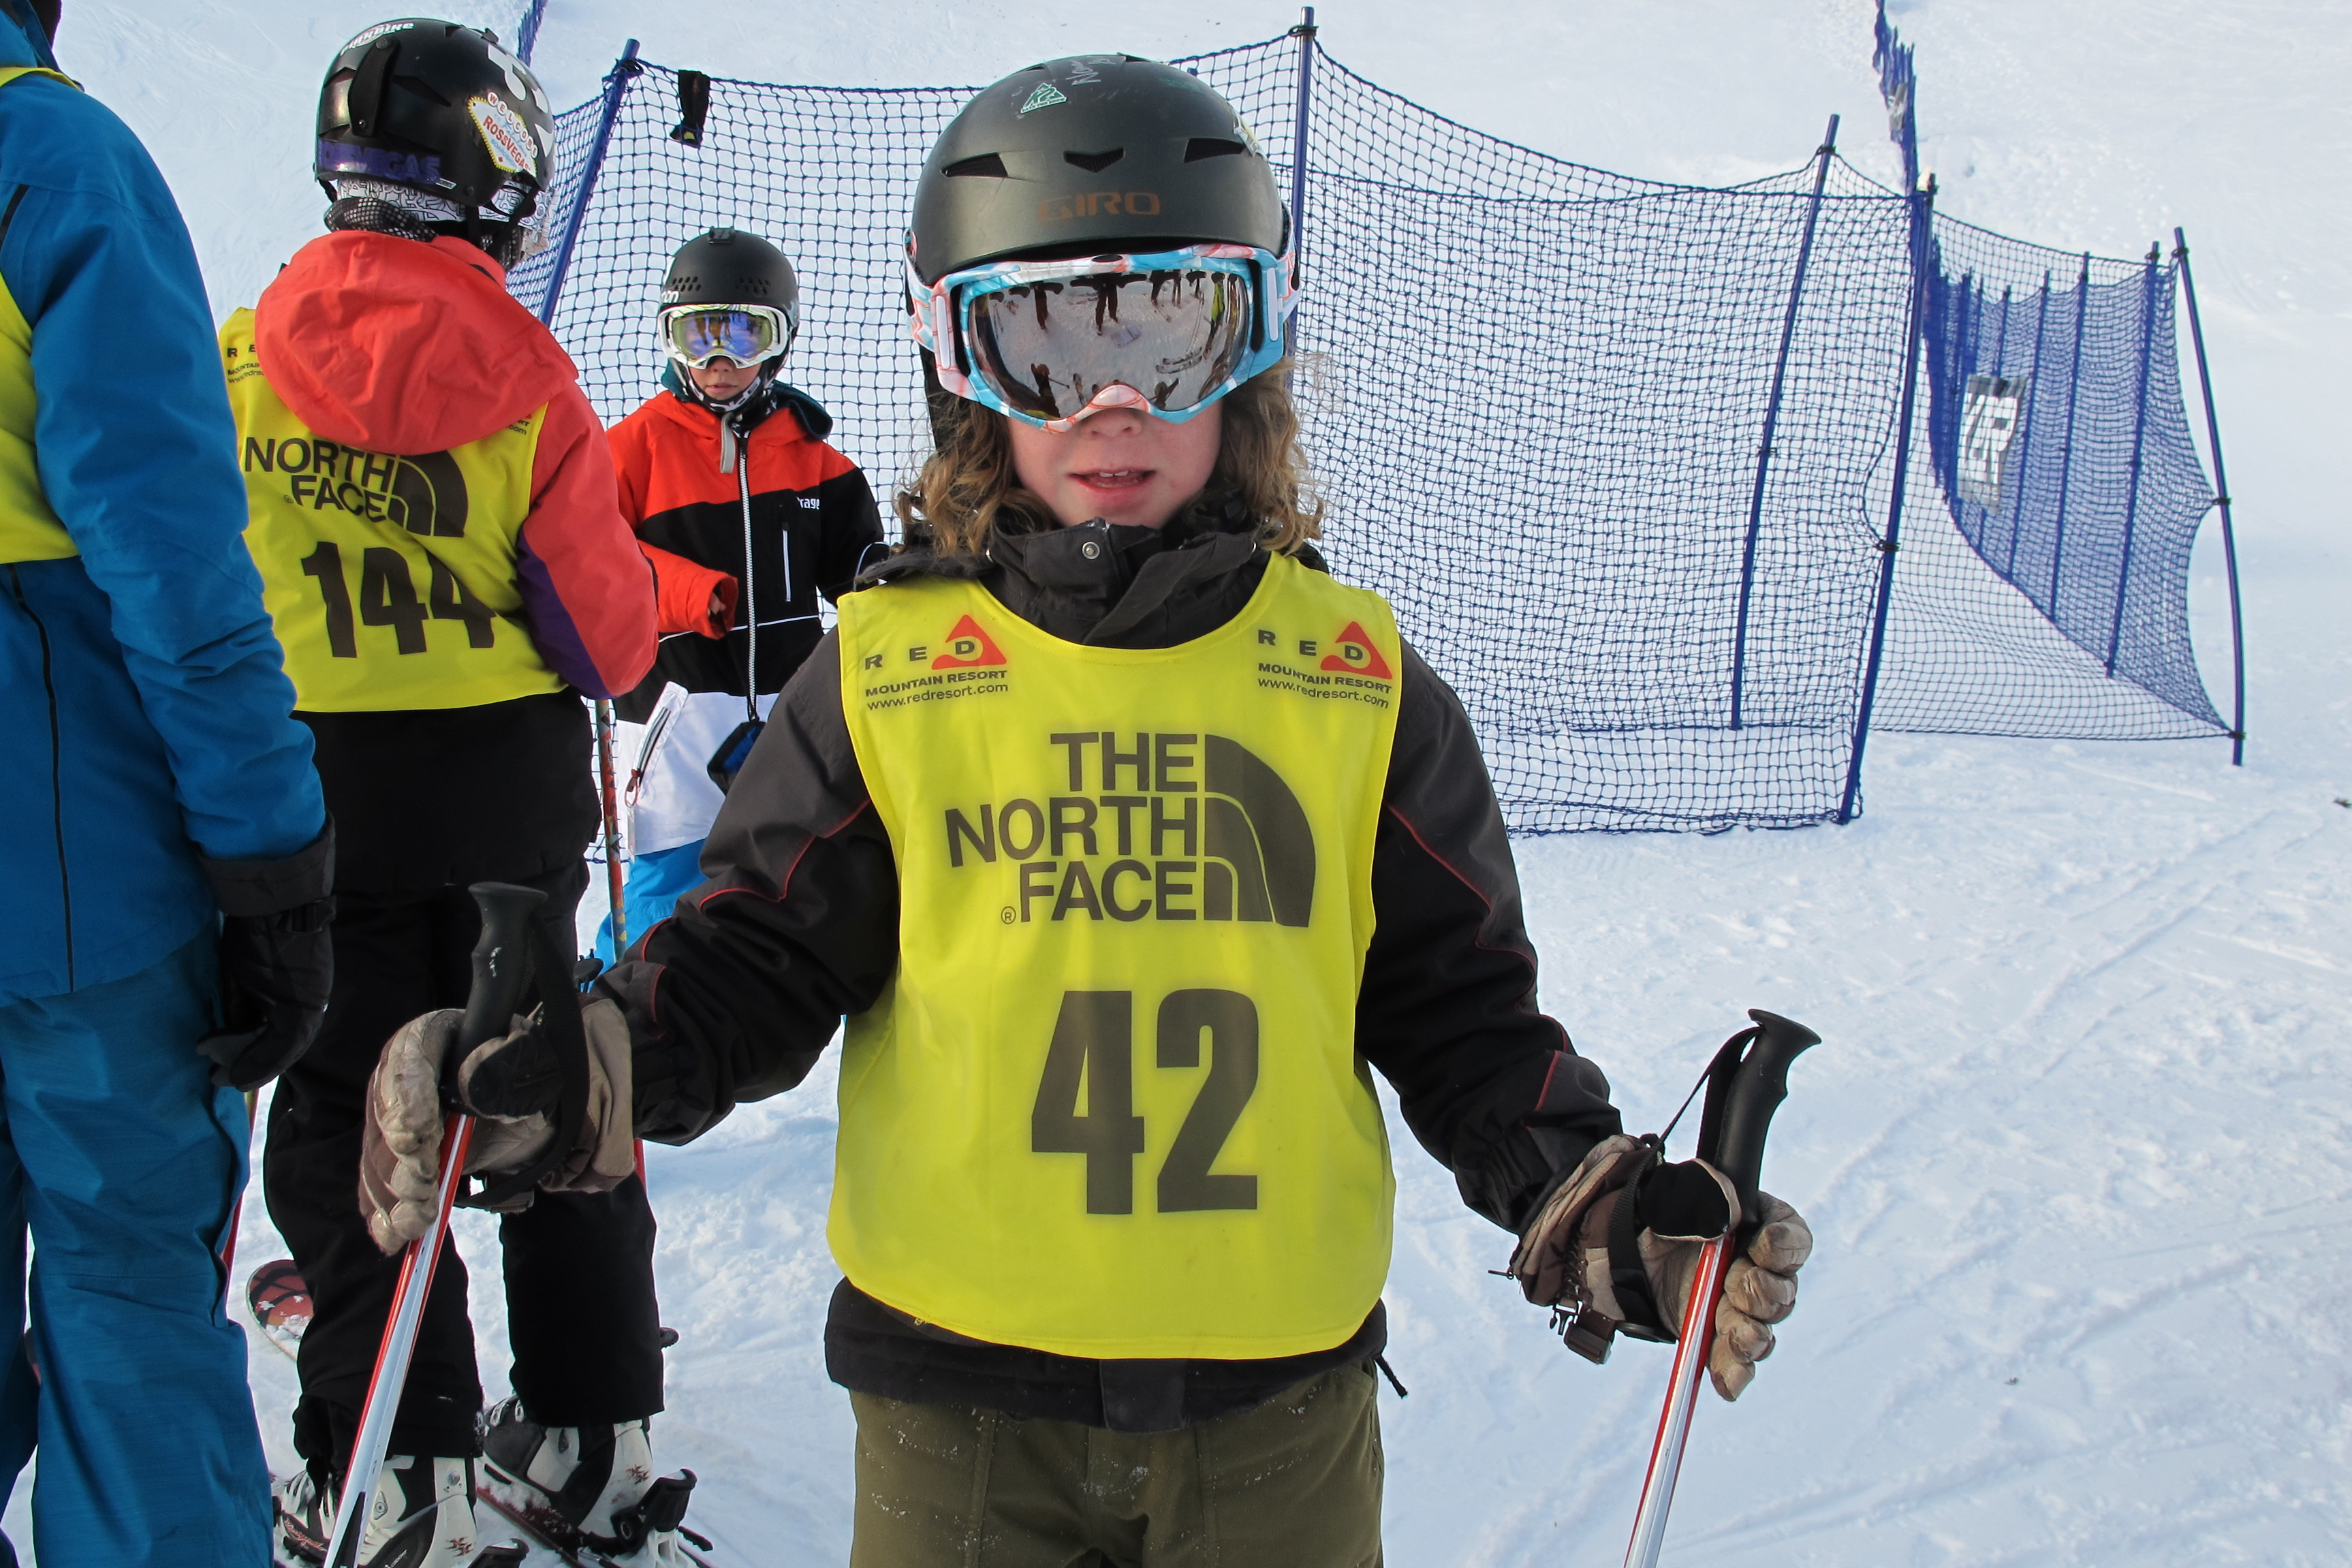 2013 Canadian Freeskiing Open – Red Mountain Junior Comp Results